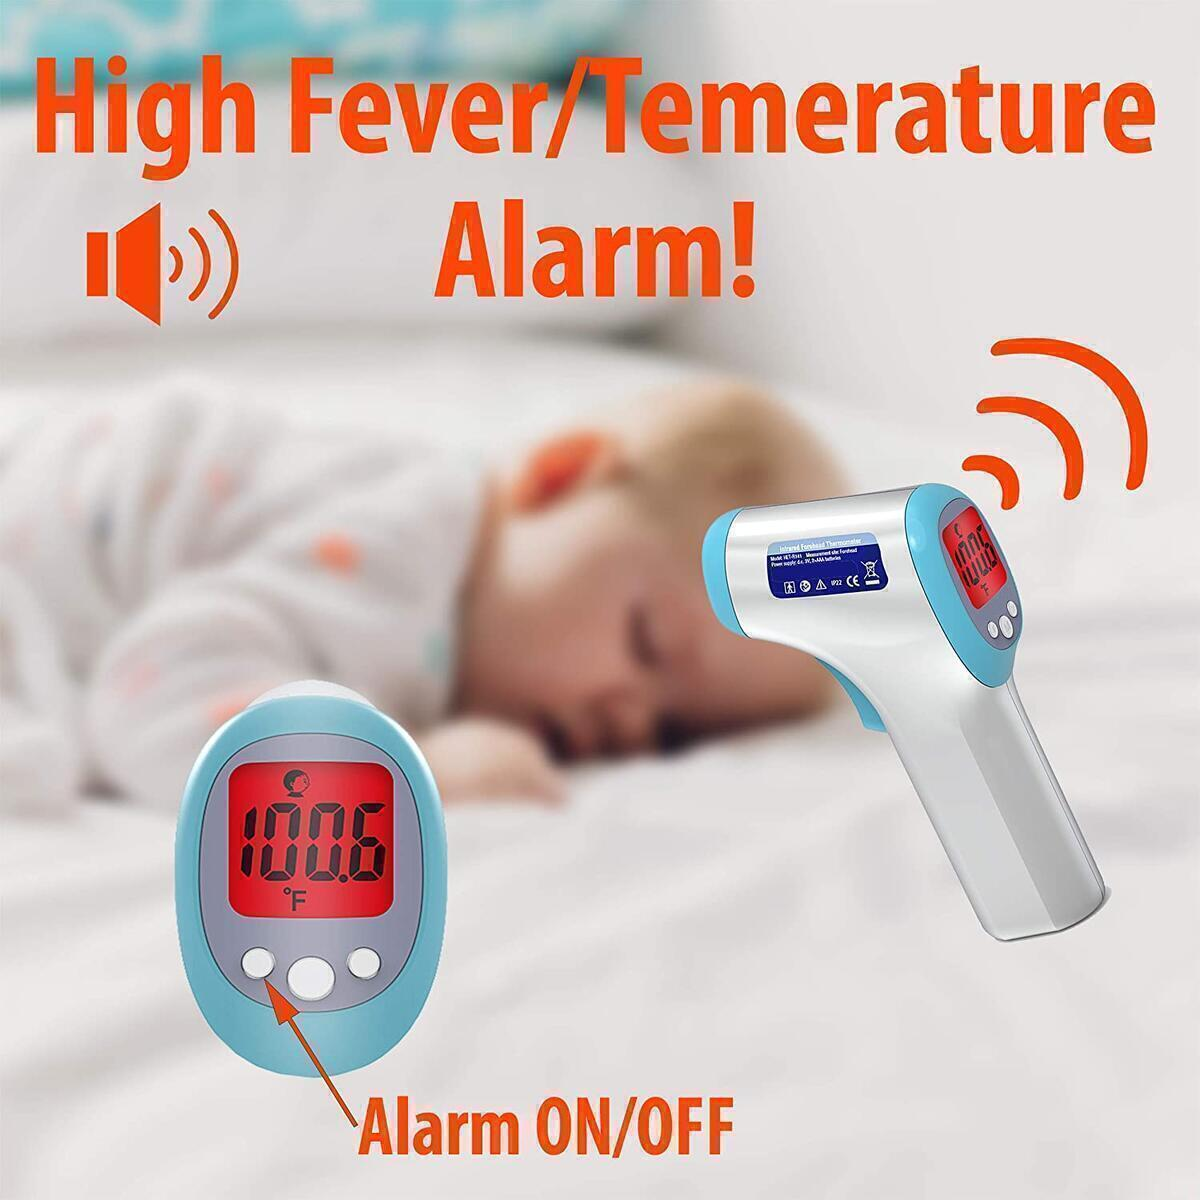 FRONT ARCH Digital Infrared Thermometer Forehead – Non - Contact Temperature Thermometer, Temperature Gun, Instant Accurate Laser Readings, Check Fever for Babies,Adults, Surface Temp